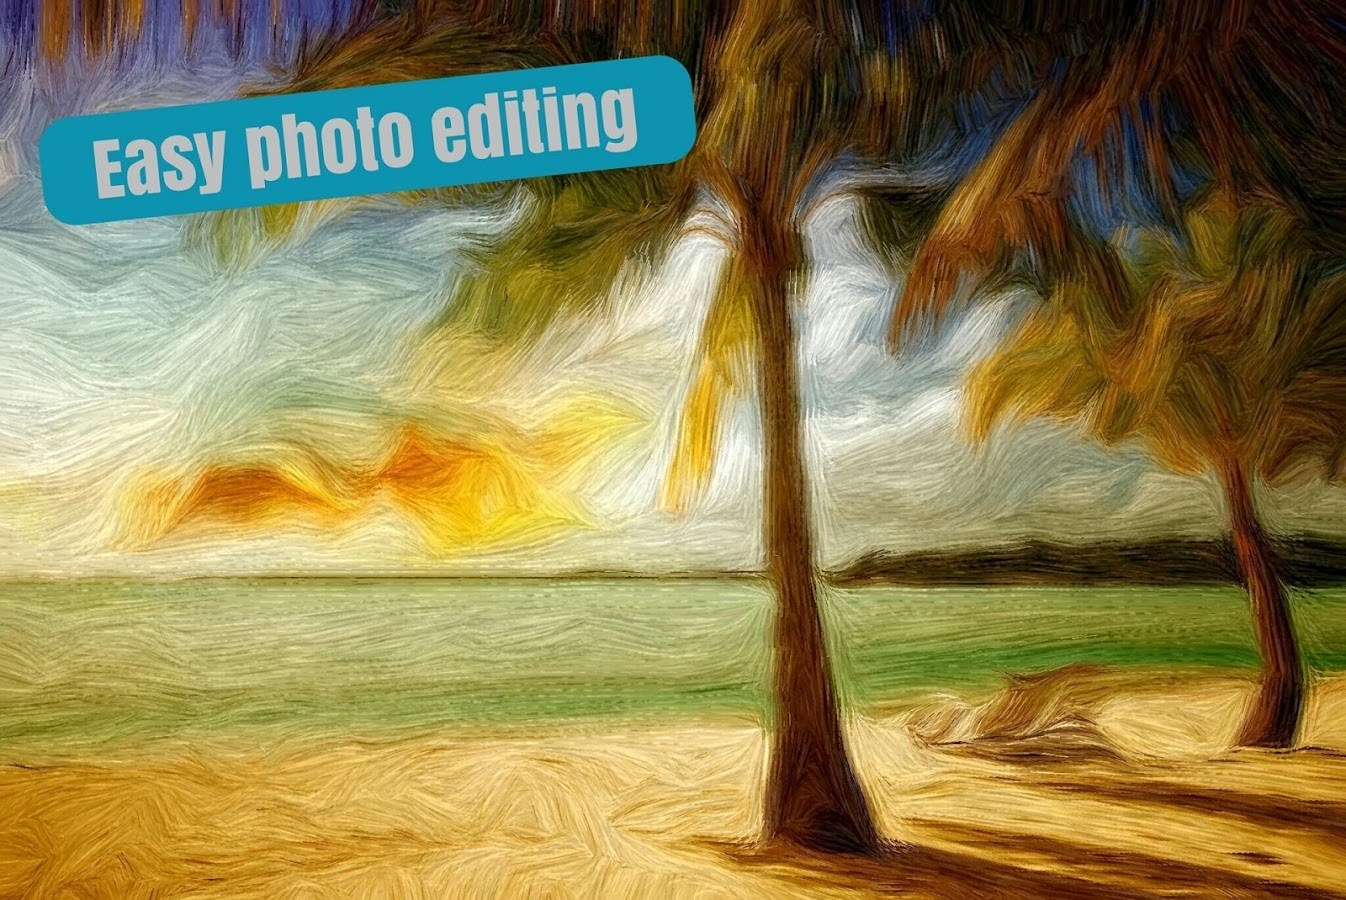 Bonfire Photo Editor - Imagem 1 do software